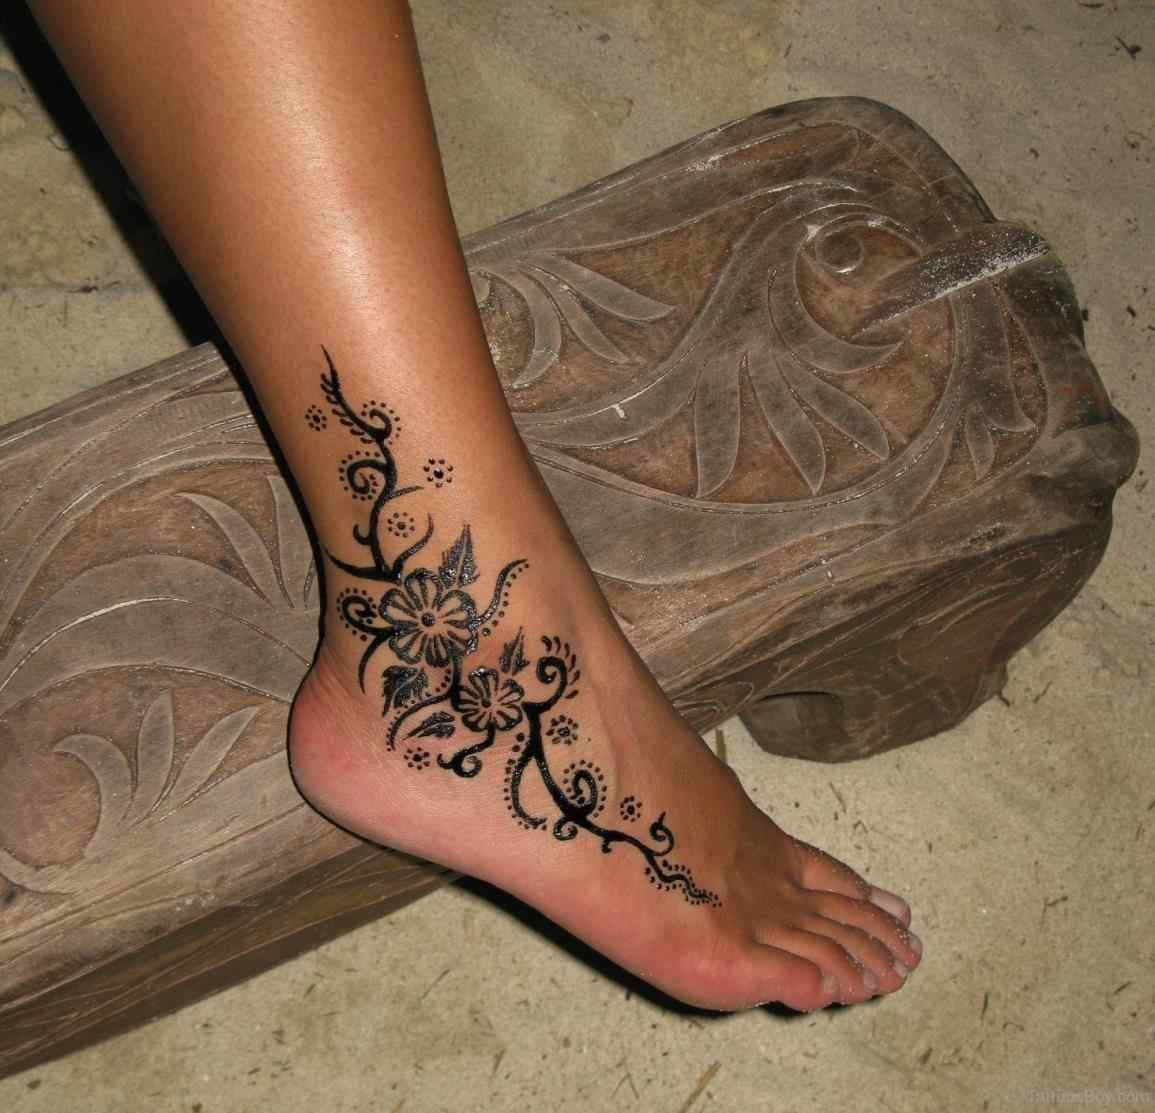 Ankle tattoo ideas for women image result for ankle cover up tattoos for women  tattoo